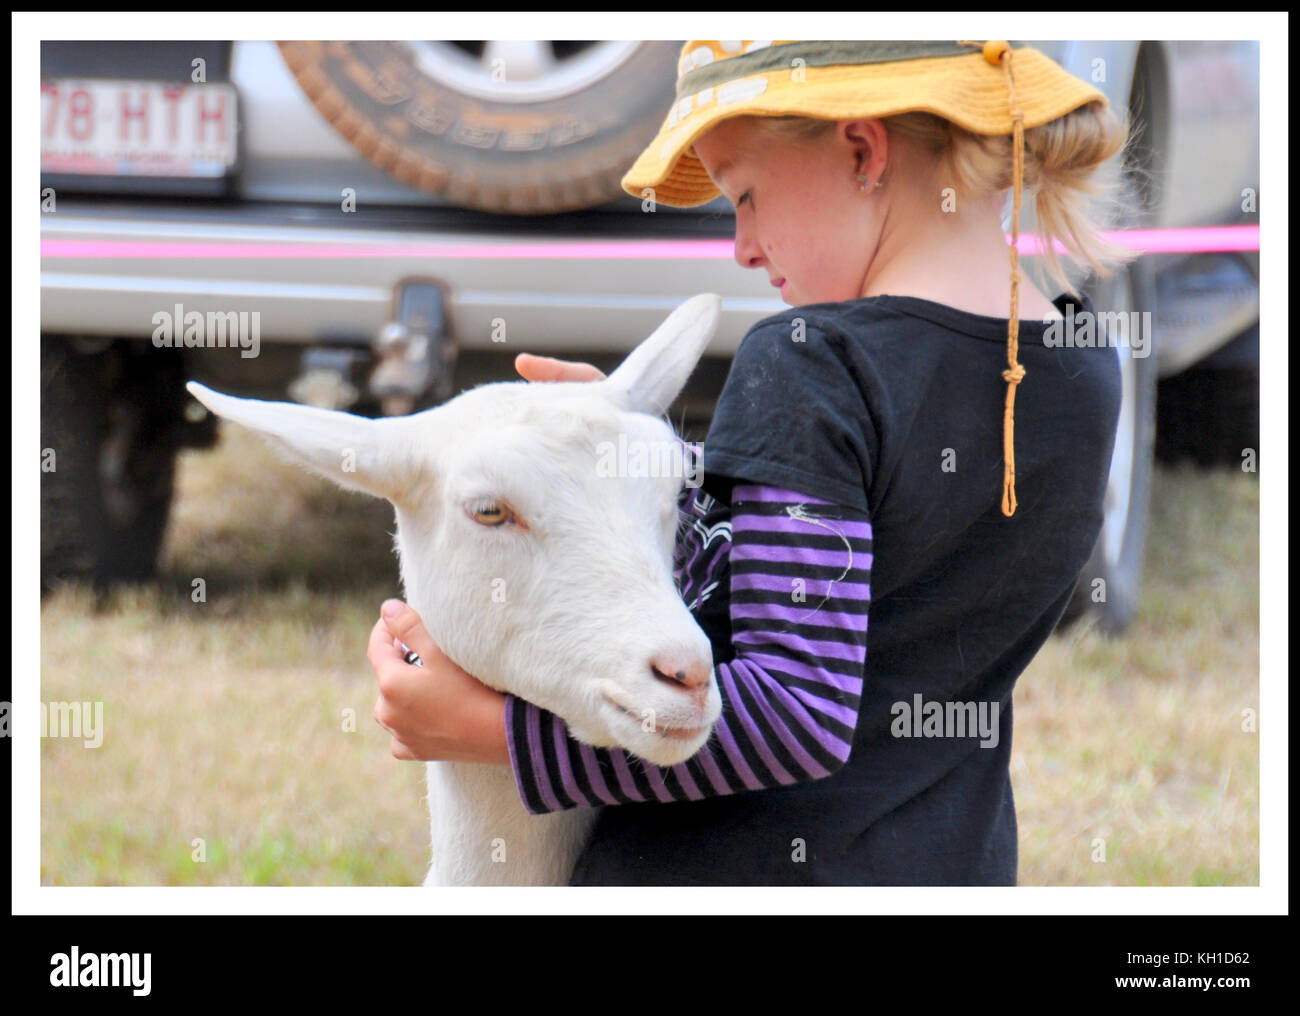 PET NANNY GOAT AND YOUNG GIRL - Stock Image